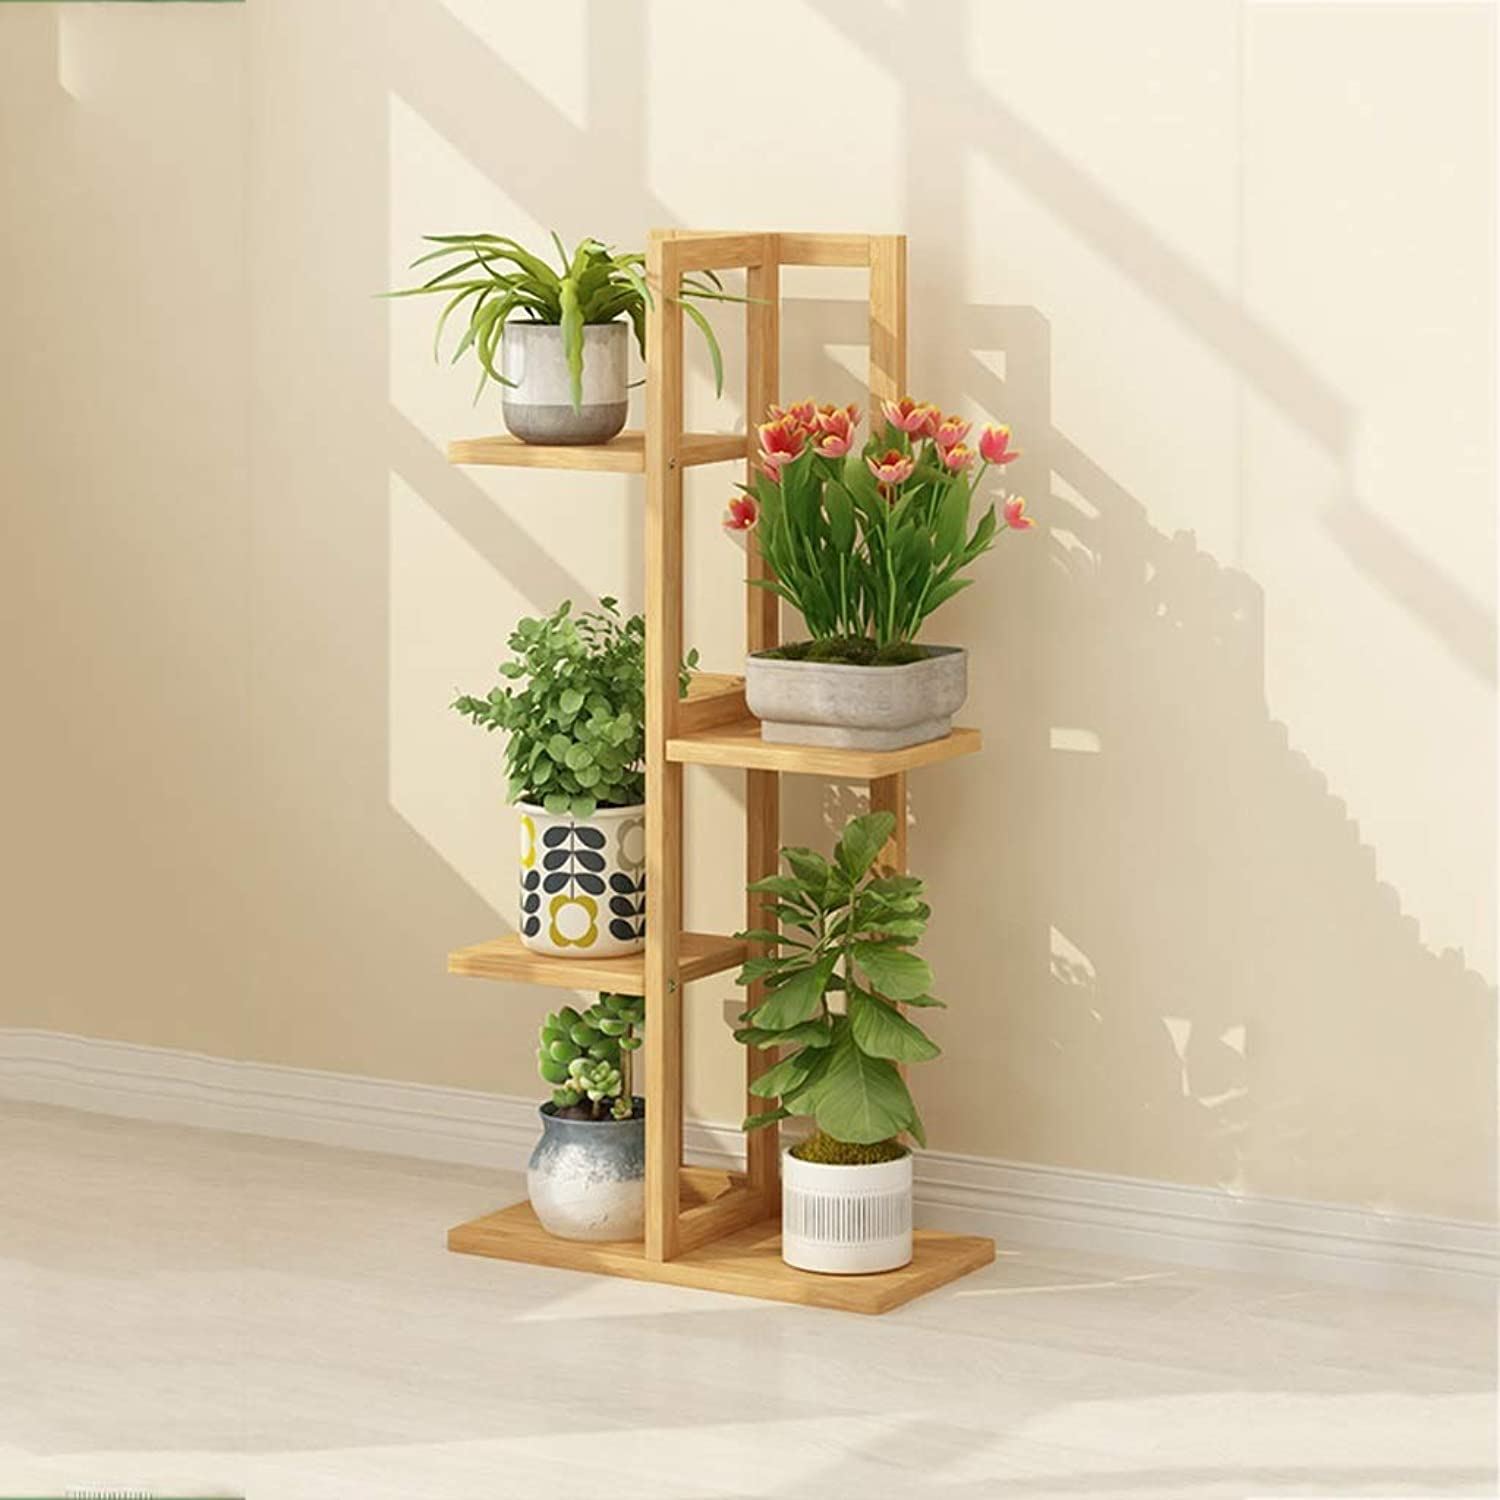 Flower racks - Bamboo Flower Stand Floor Storage Rack Multi-Layer Indoor Balcony Decoration Pot Rack Plant Shelf 40×20×102 125 145cm (Size   40  20  102cm)